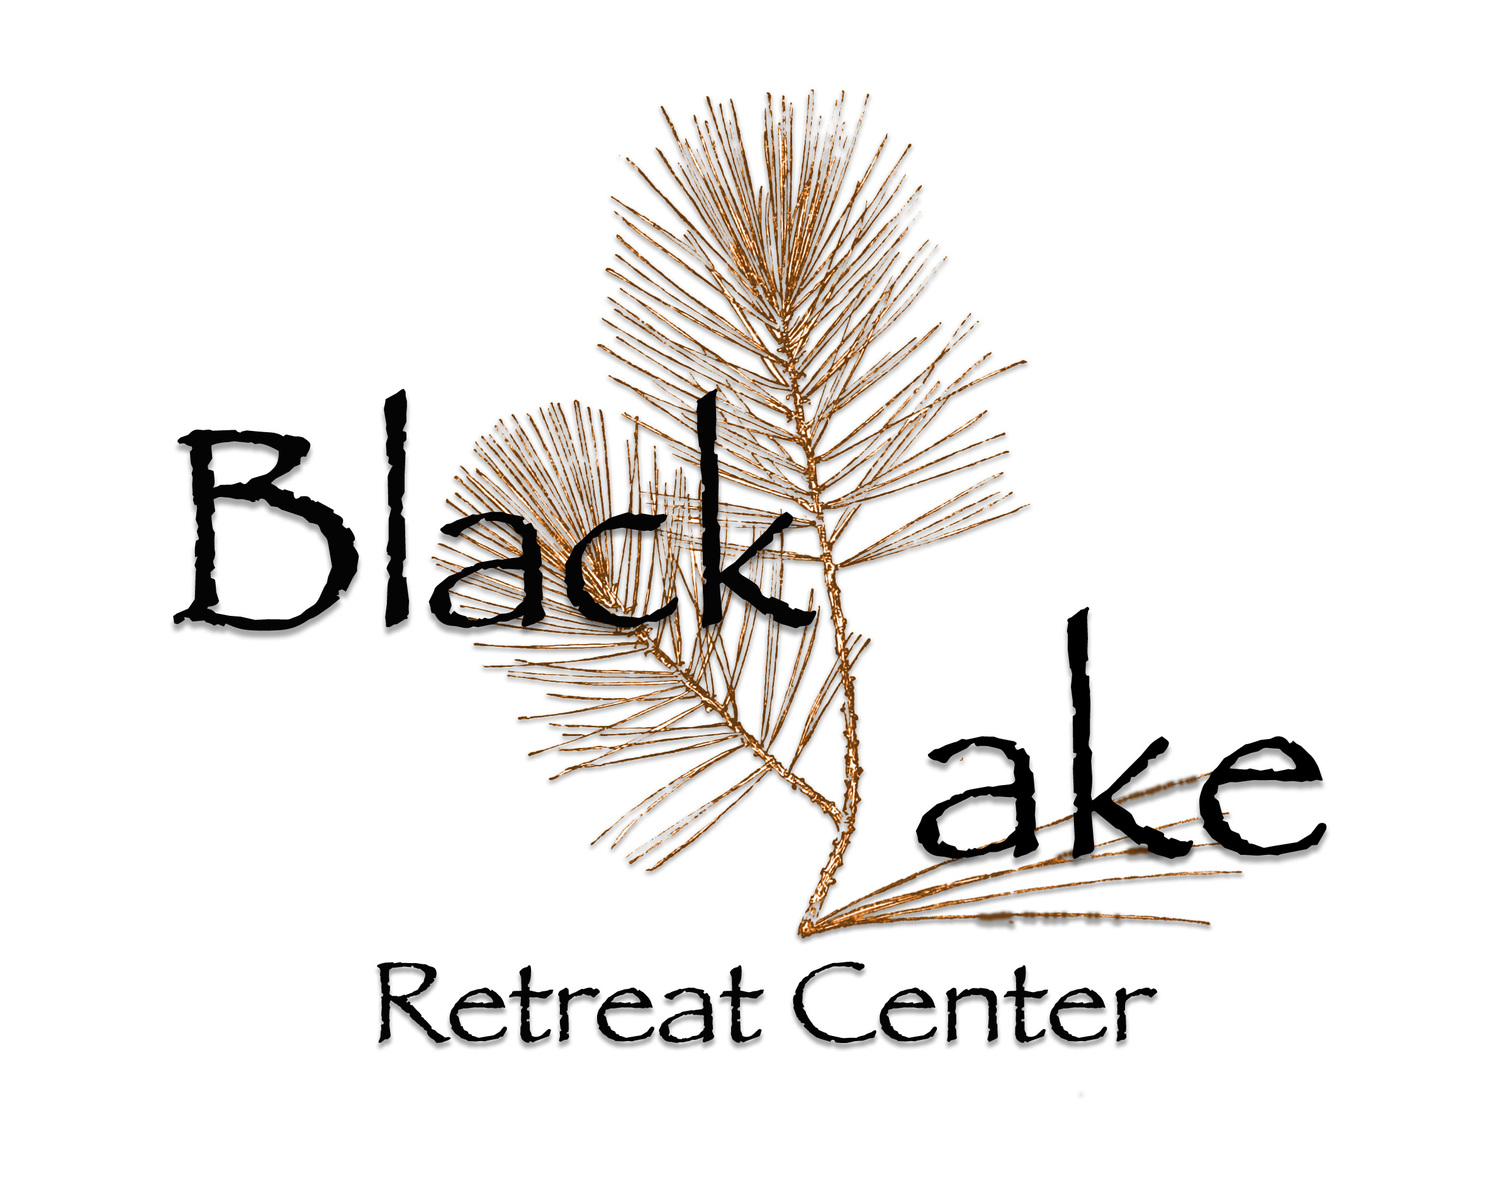 Black Lake Retreat Center